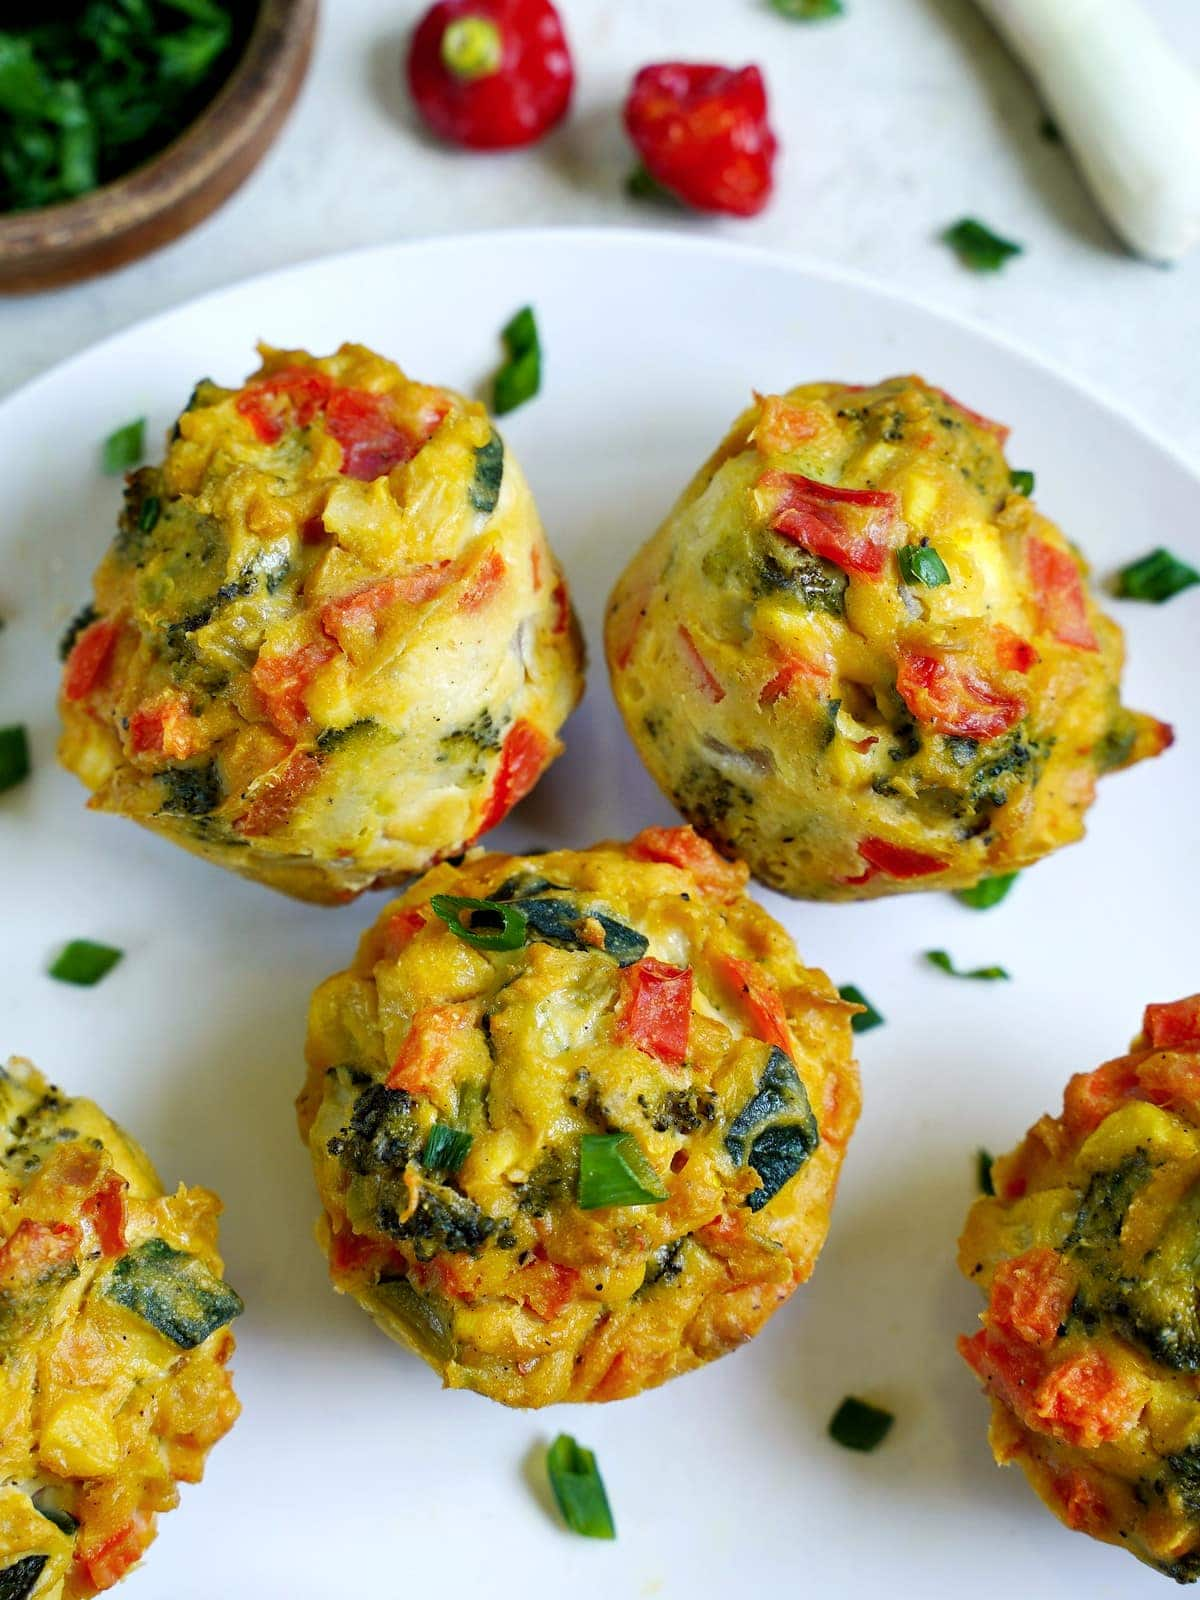 close-up of savory muffins on white plate